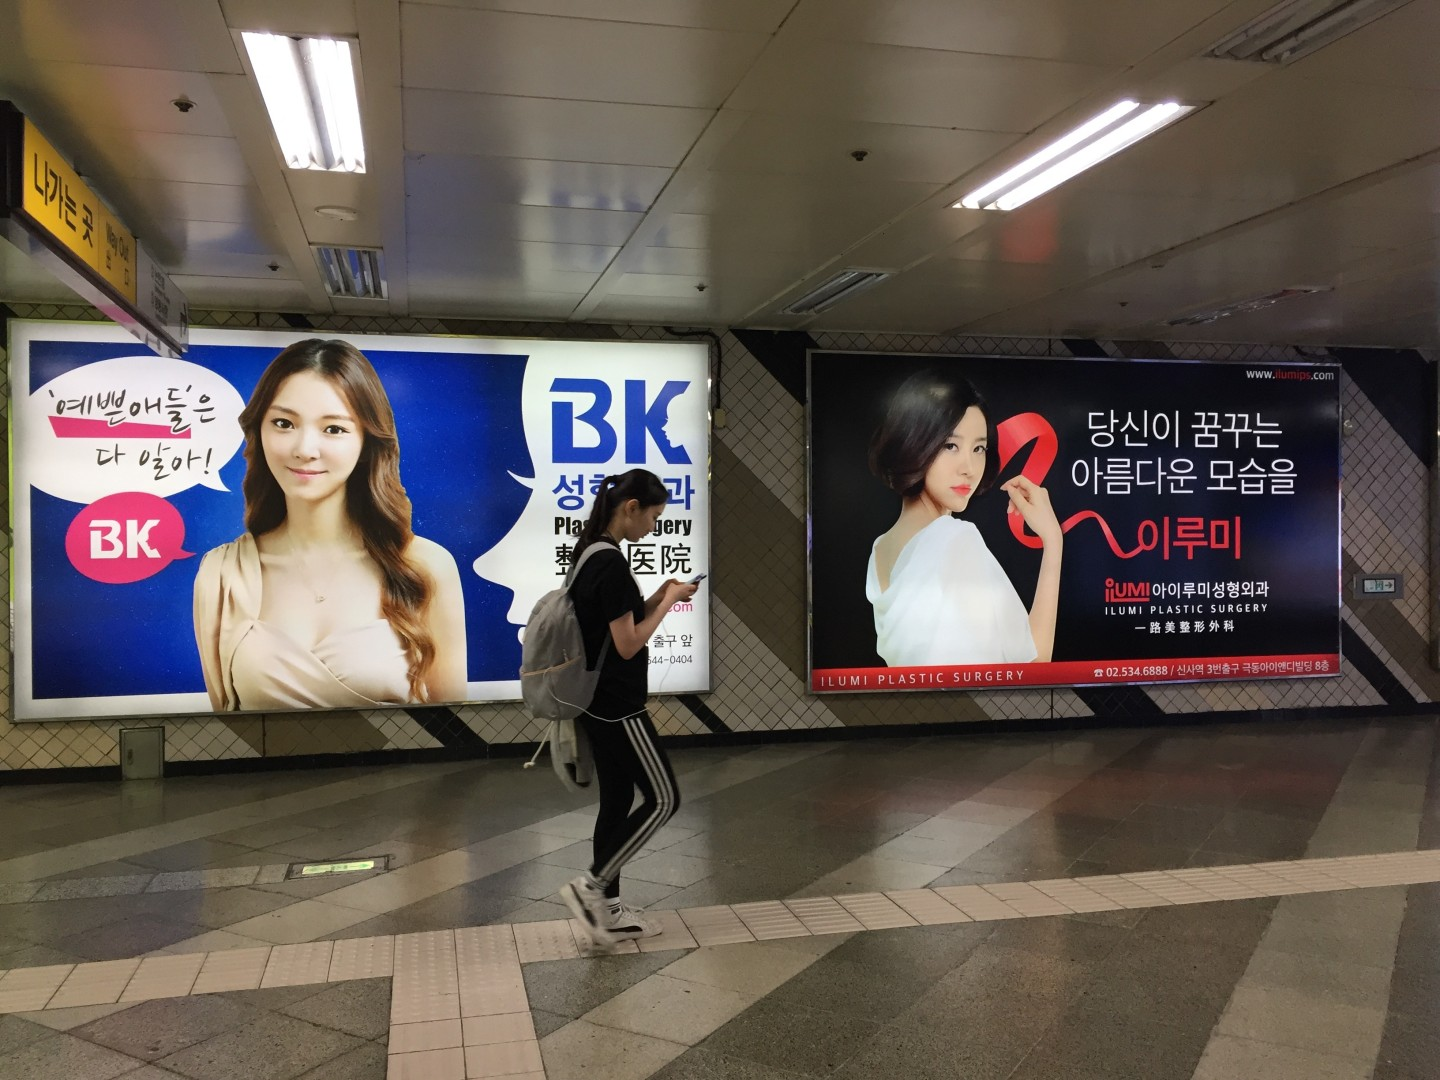 Being ugly hurts in South Korea: why it's so hard to say no